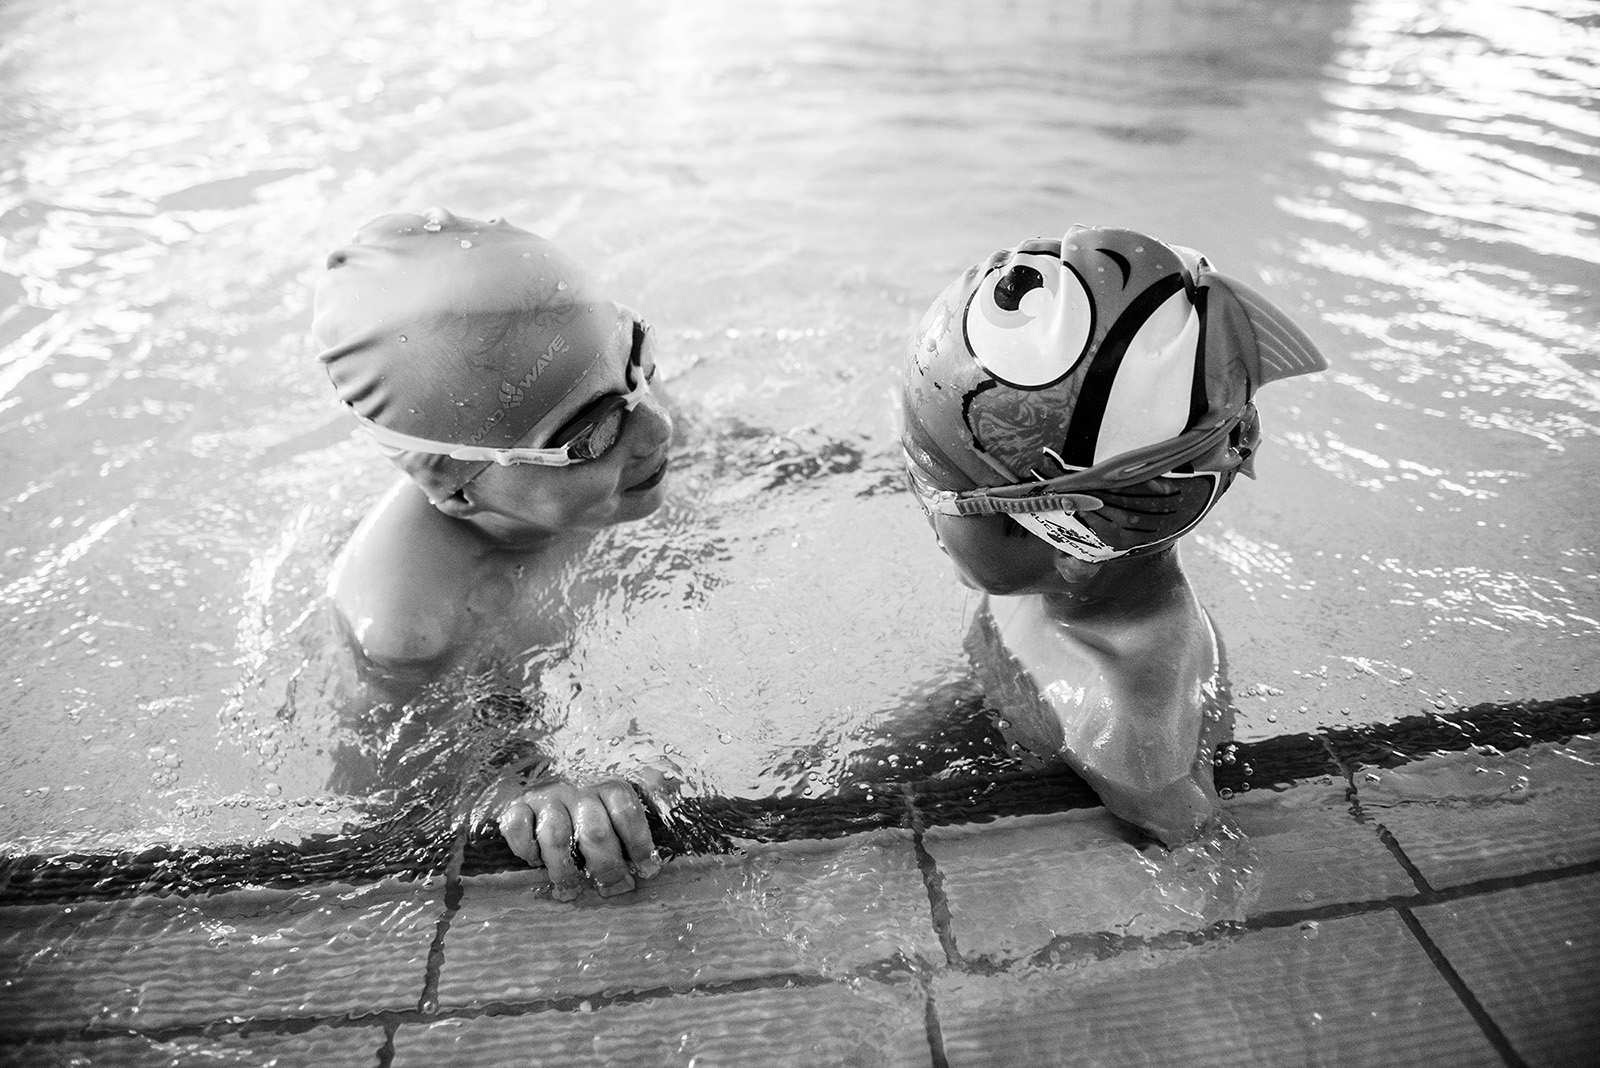 Ismail chats with a friend in the pool.